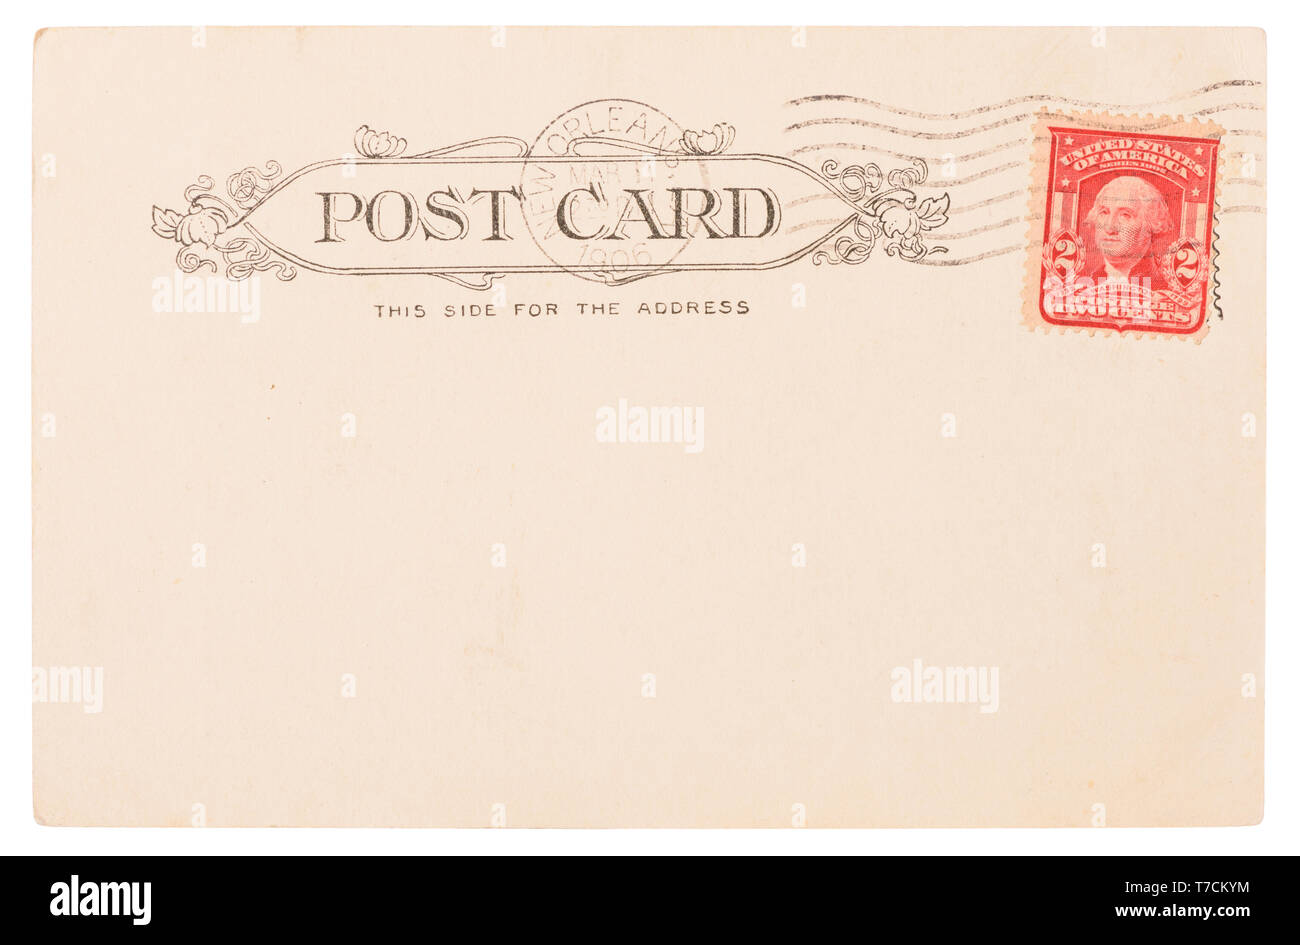 Antique post card from USA circa 1906 with New Orleans postal meter stamp and Washington postage stamp isolated on white background - Stock Image